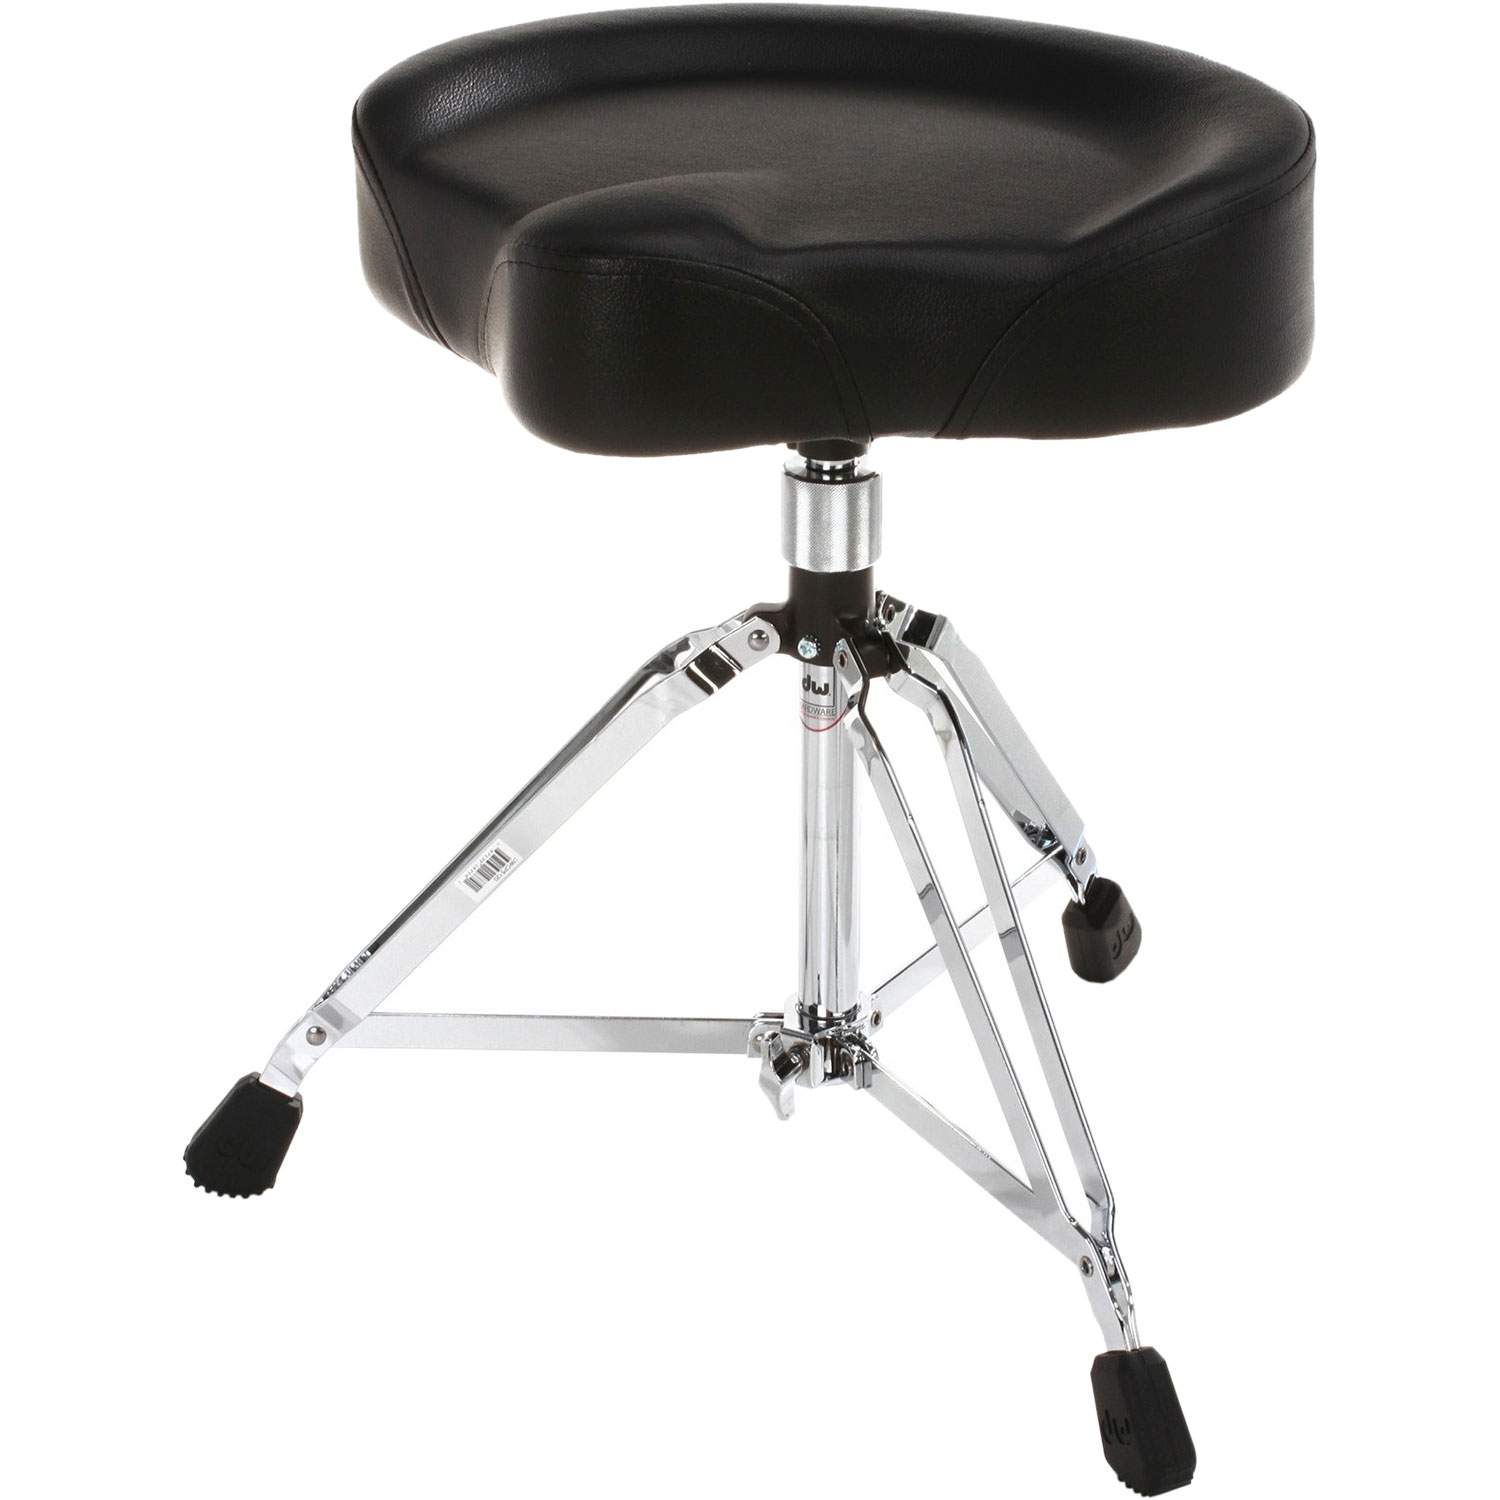 DW 5000 Series Tractor Seat Drum Throne